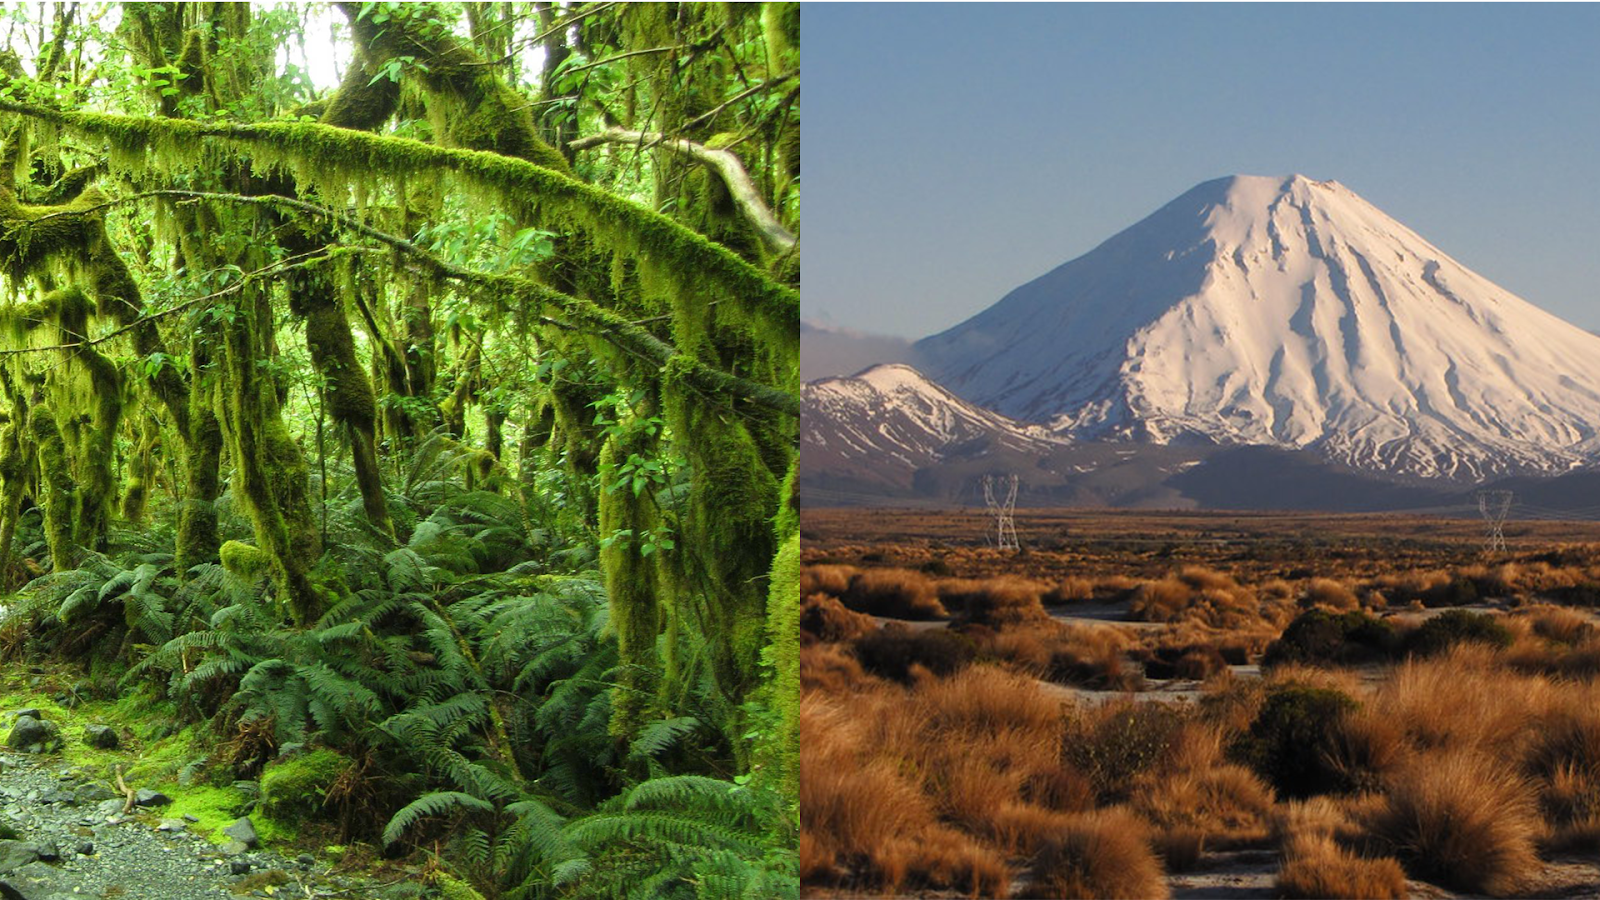 New Zealand mountains and rainforest